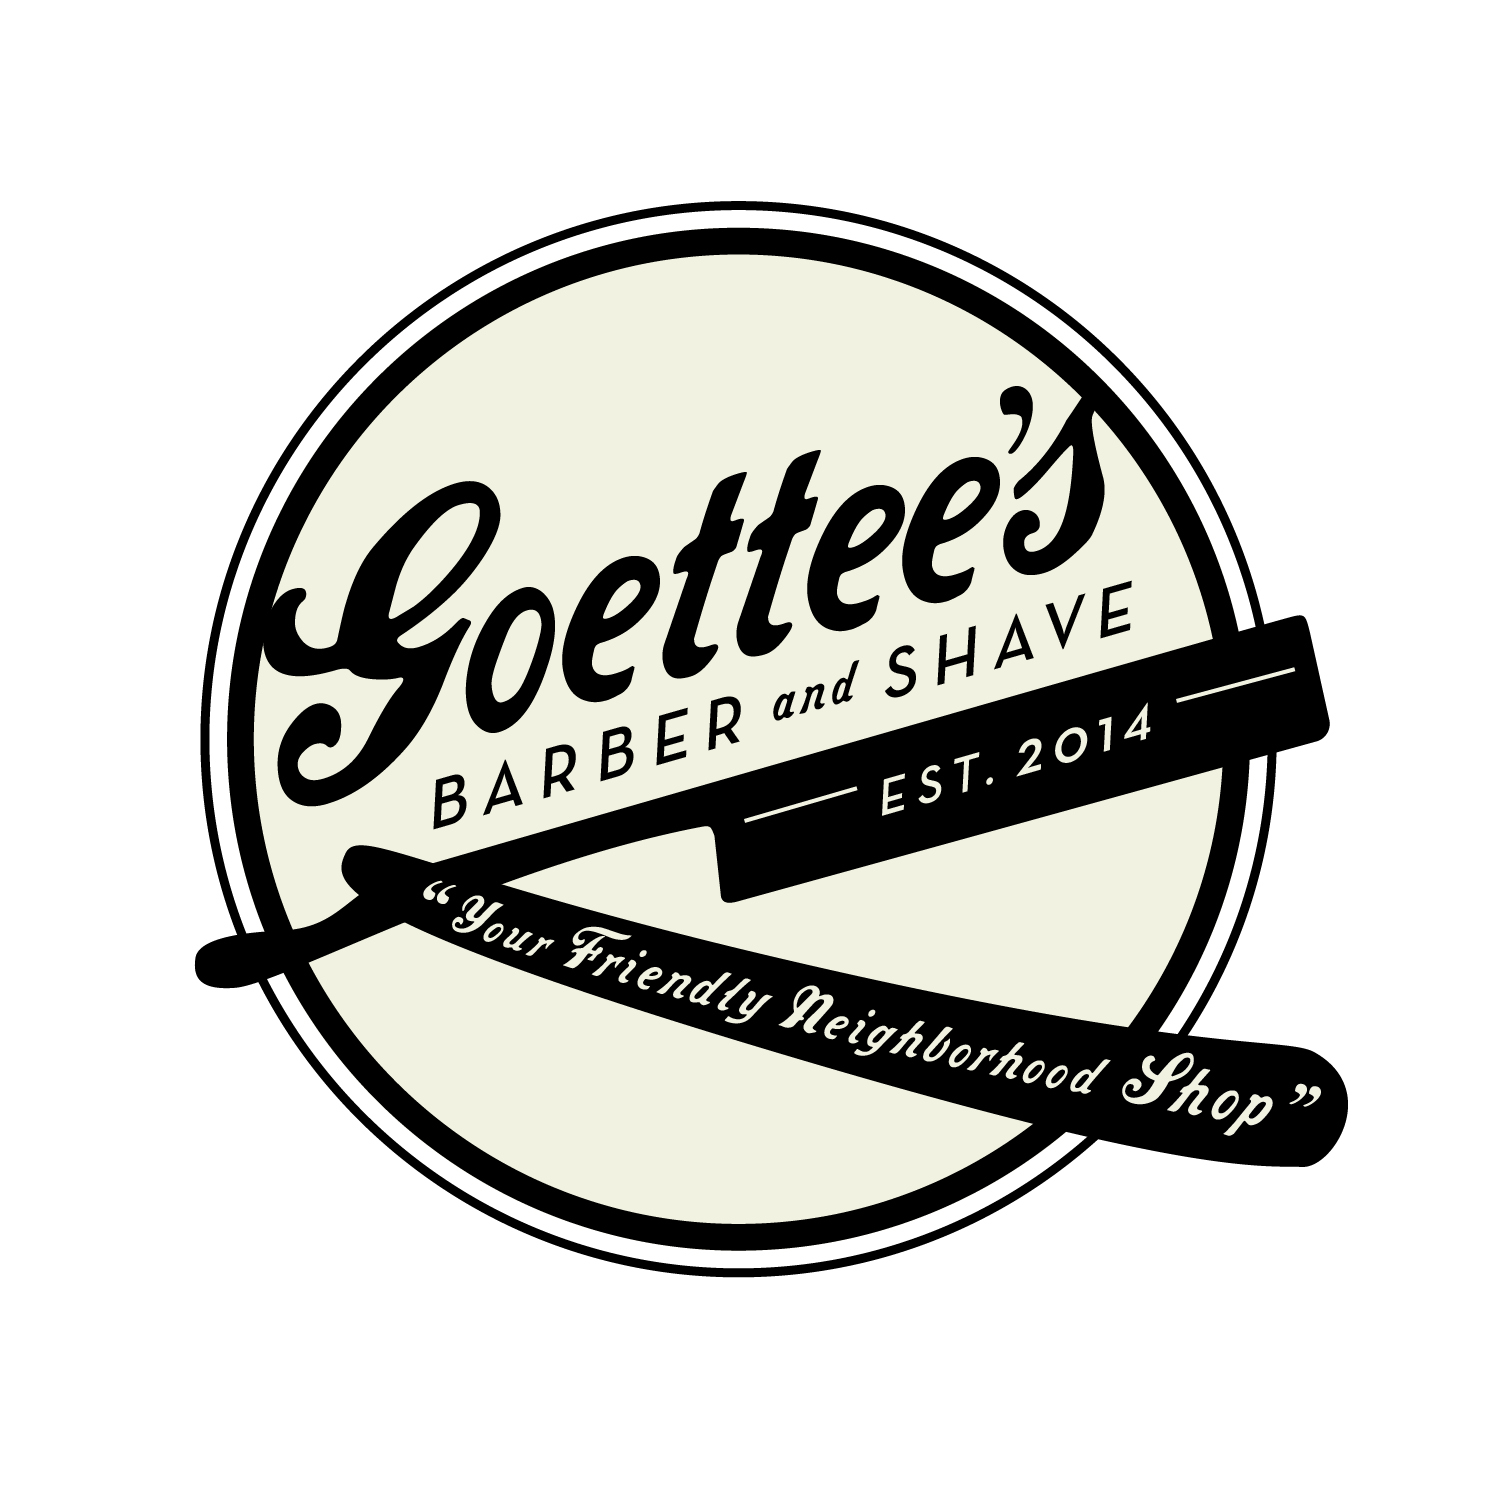 goettee's barber and shave_logo_cream.jpg